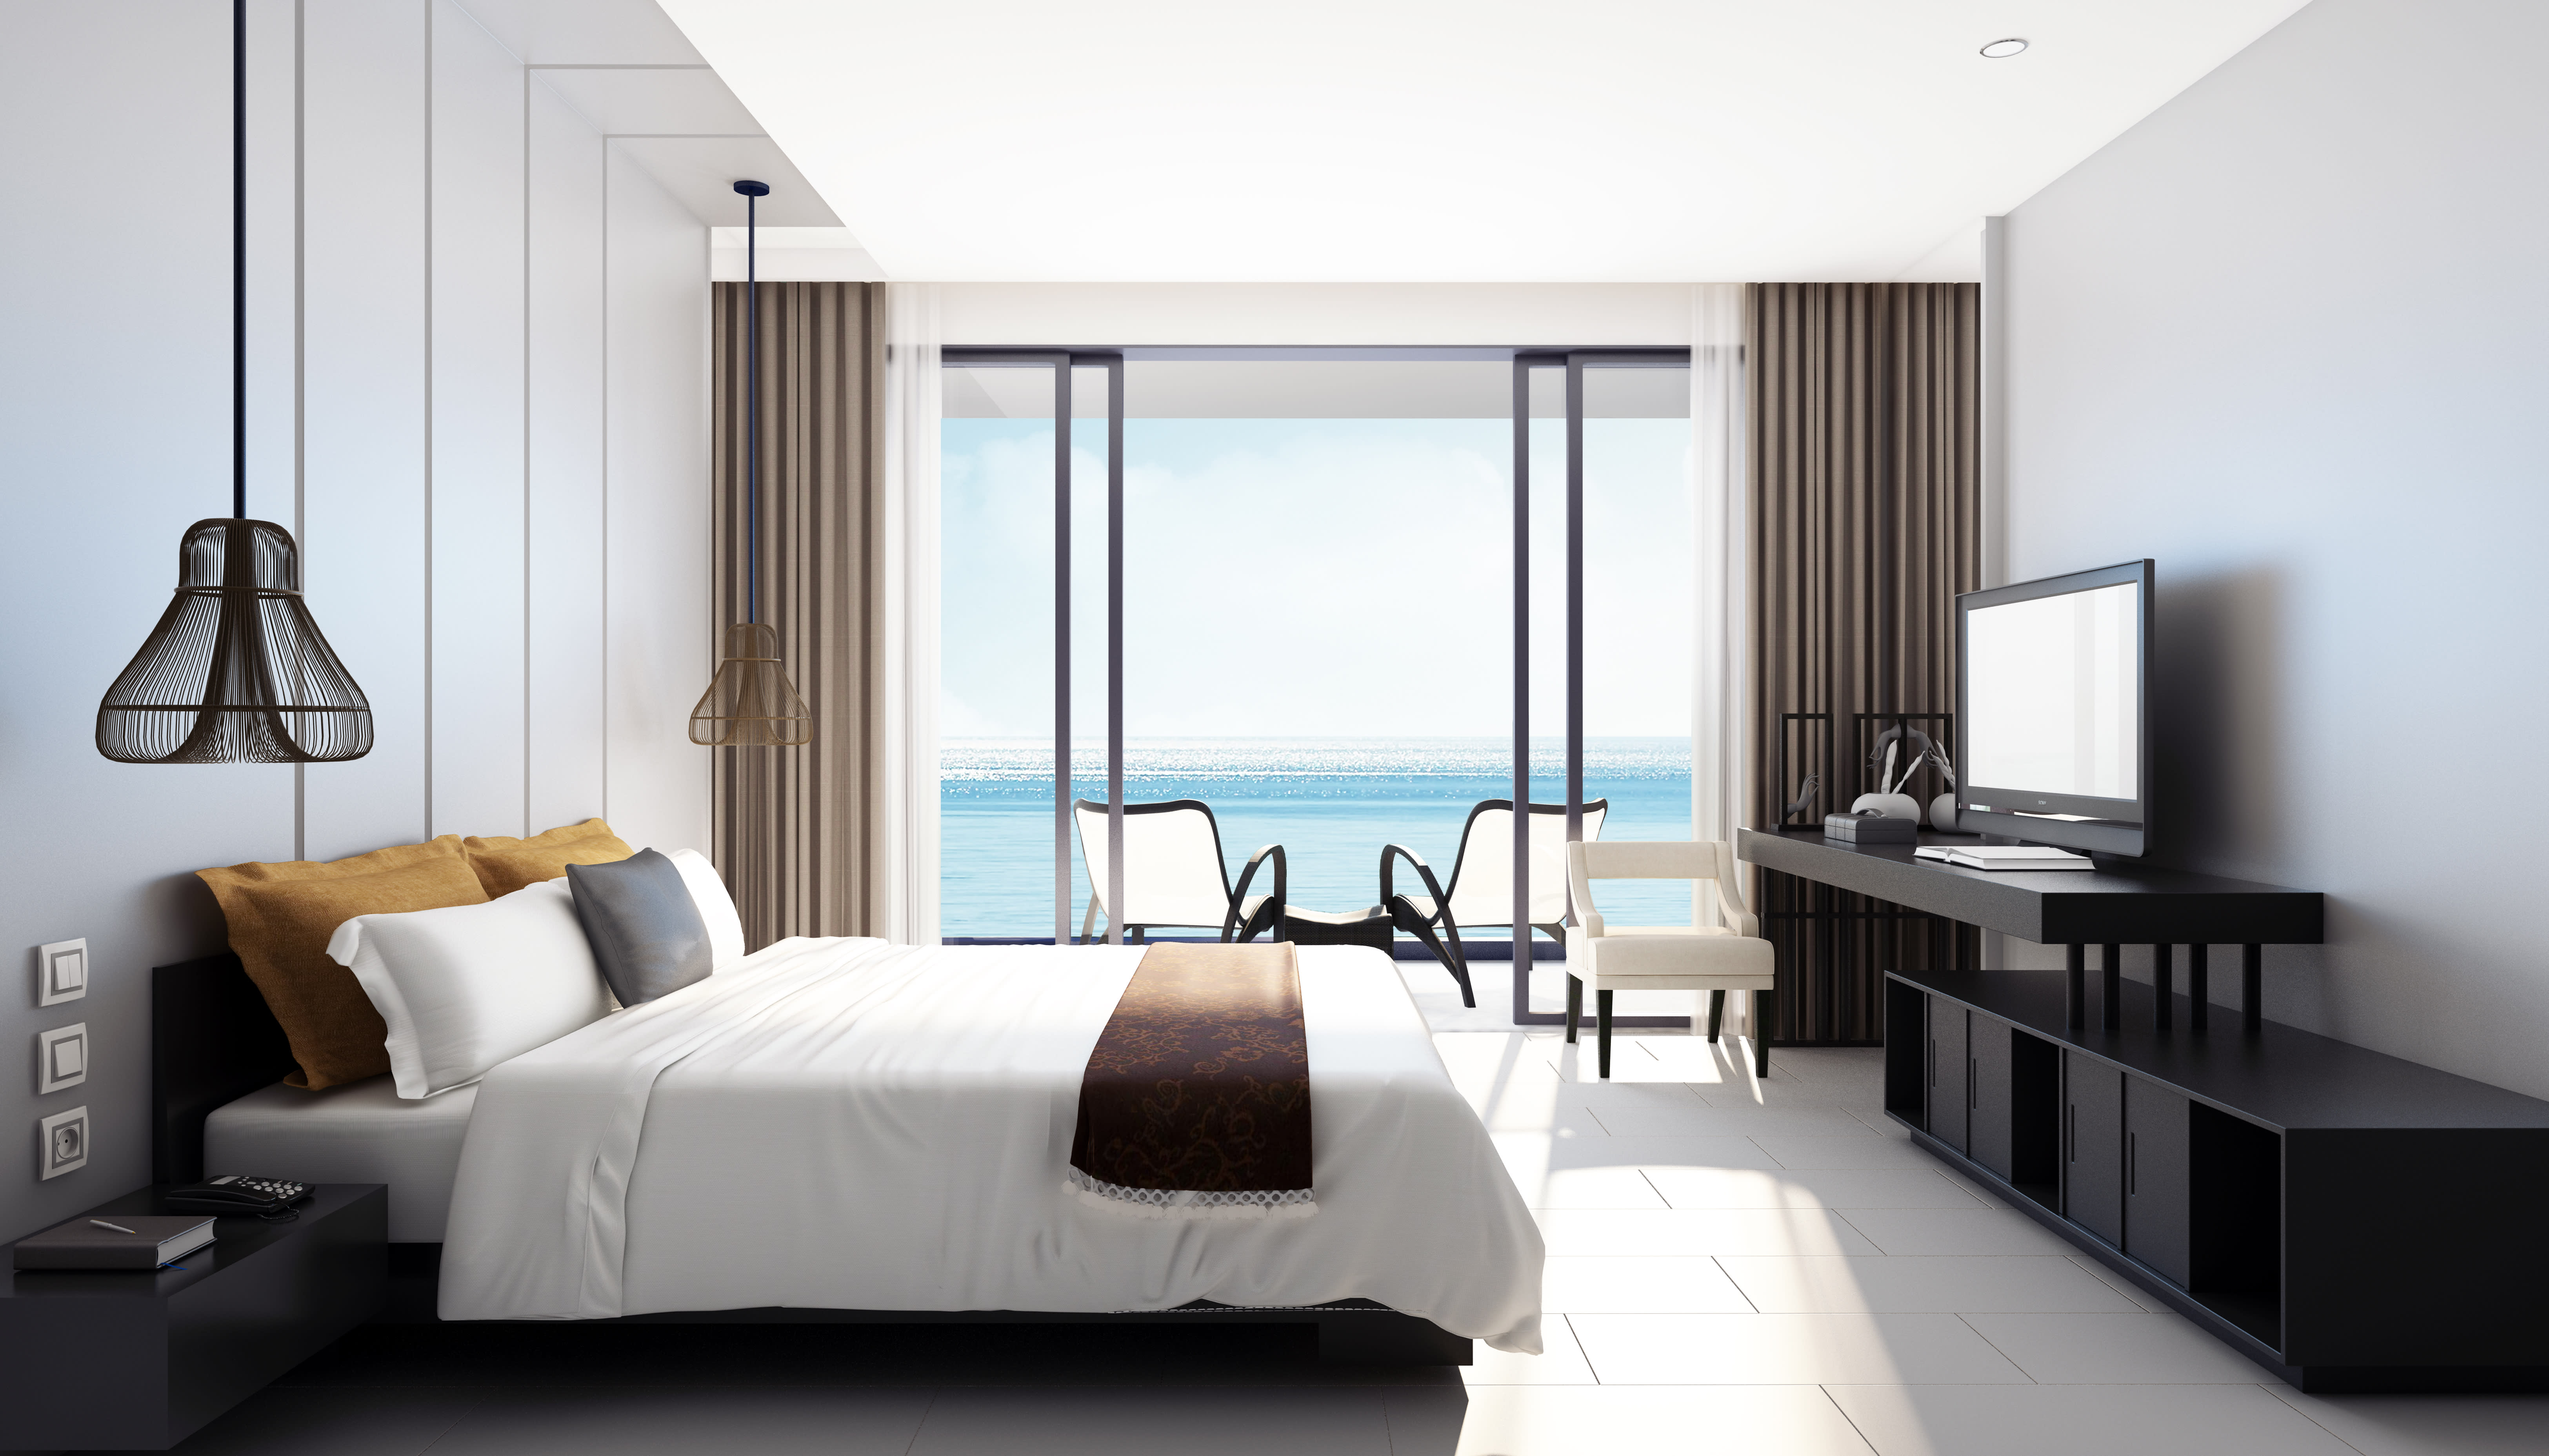 Hotel Operations in a Residential Development - benefits for the developer.